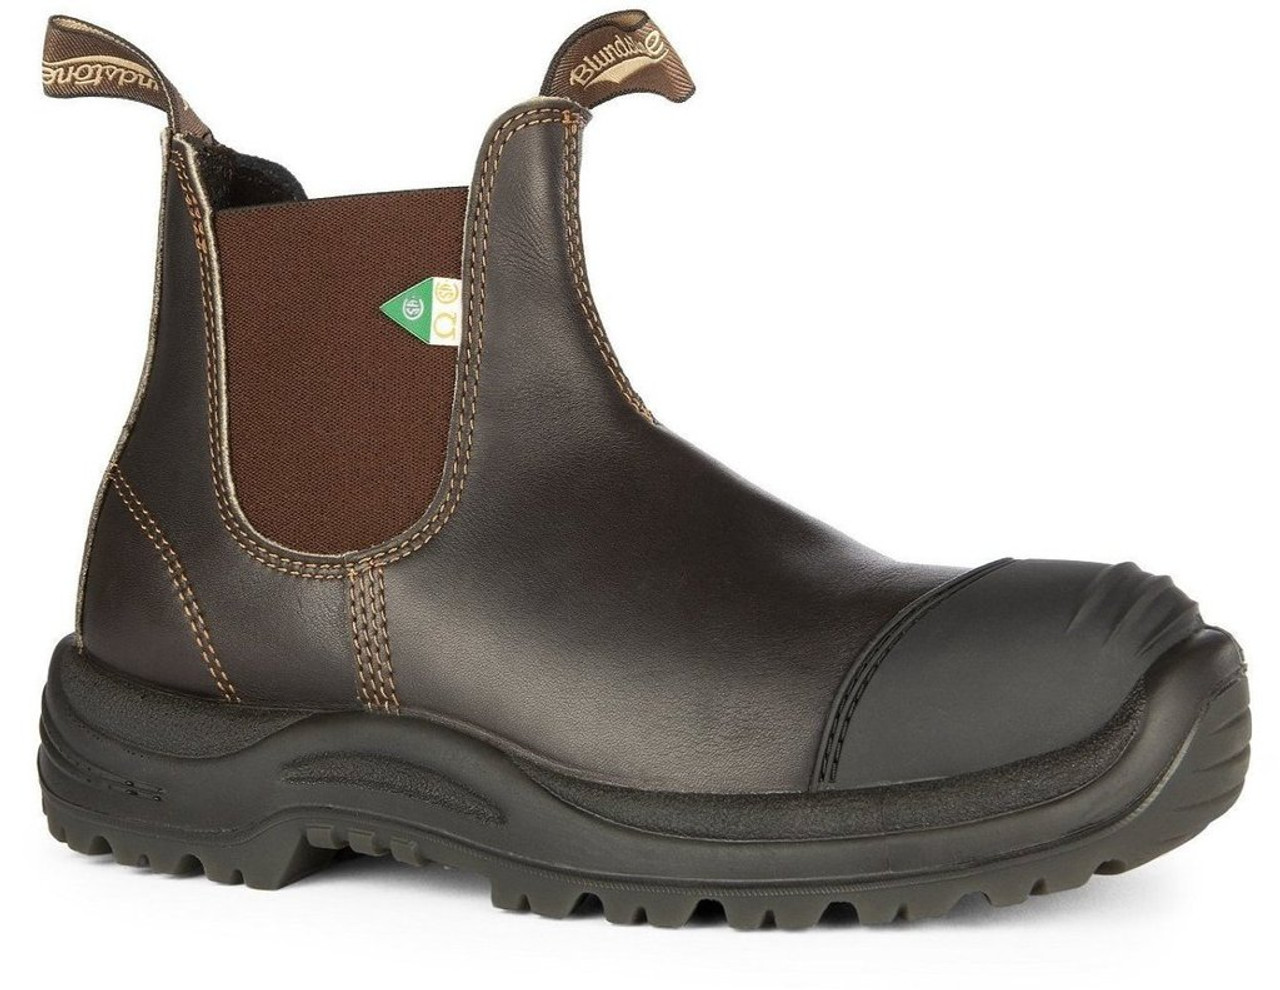 ea642c0288c Blundstone 167 Stout Brown CSA Rubber Toe Cap Safety Boot *FREE SHIPPING